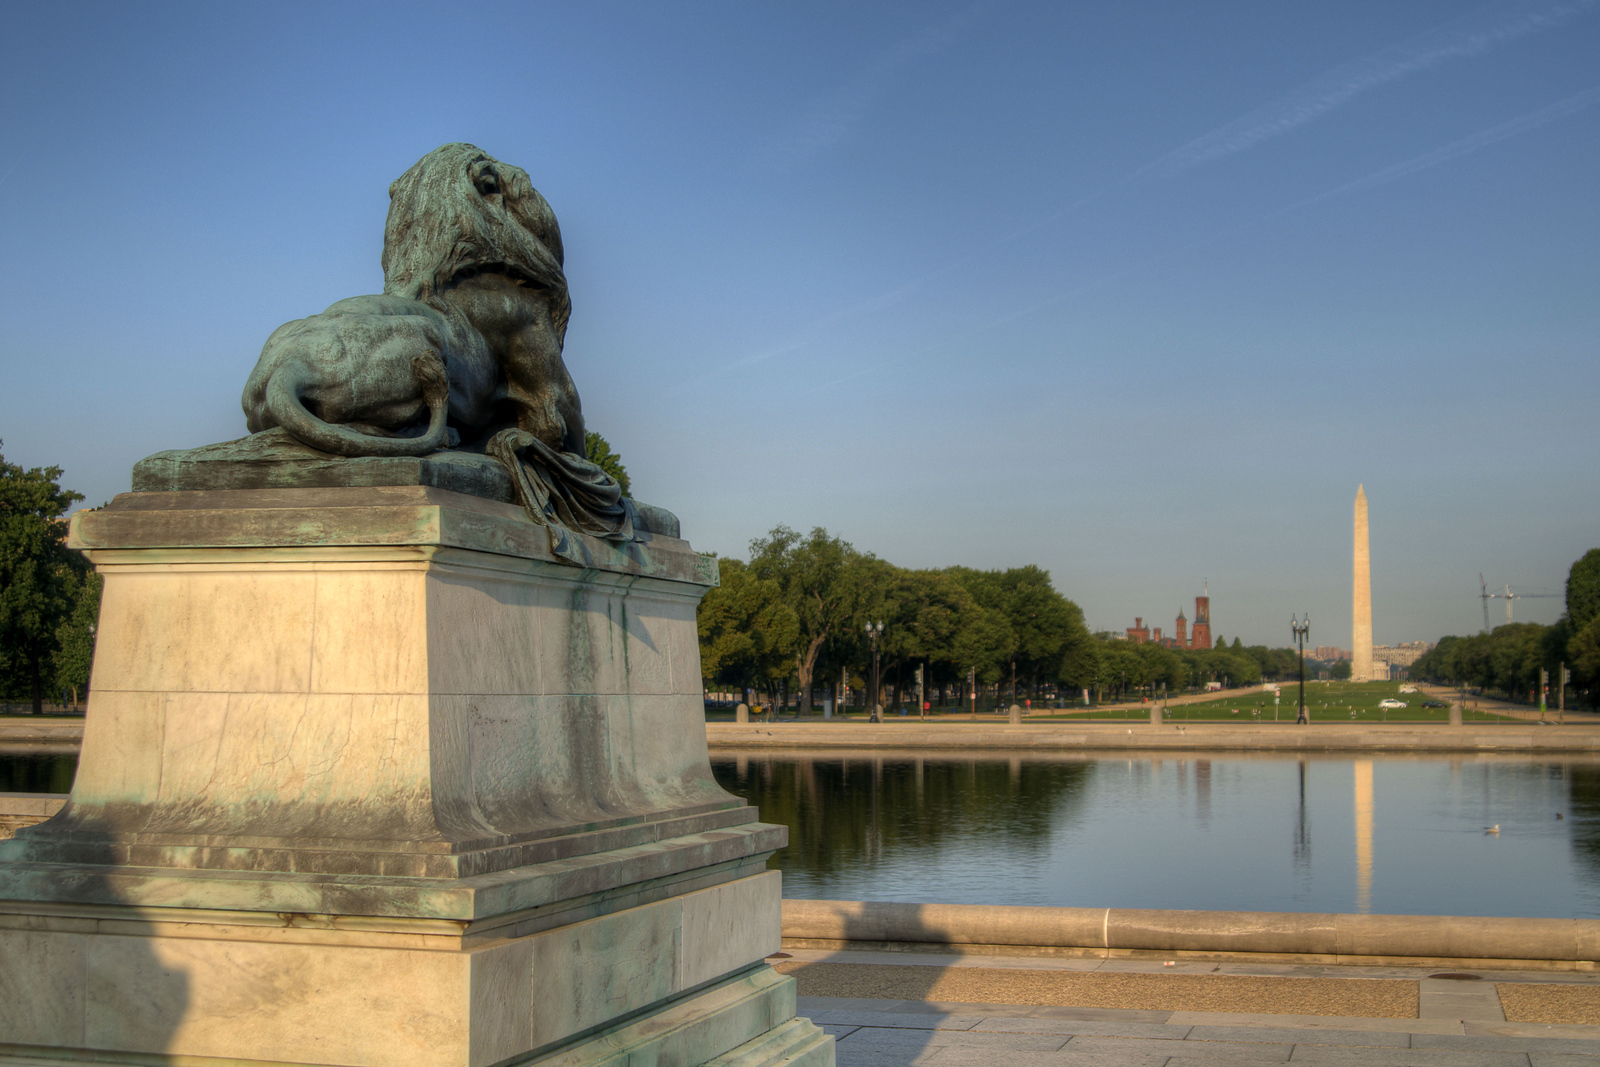 One of the lions of the Ulysses S. Grant Memorial looking out across the National Mall toward the Washington Monument in Washington, DC, on Saturday, August 16, 2014. Copyright 2014 Jason Barnette